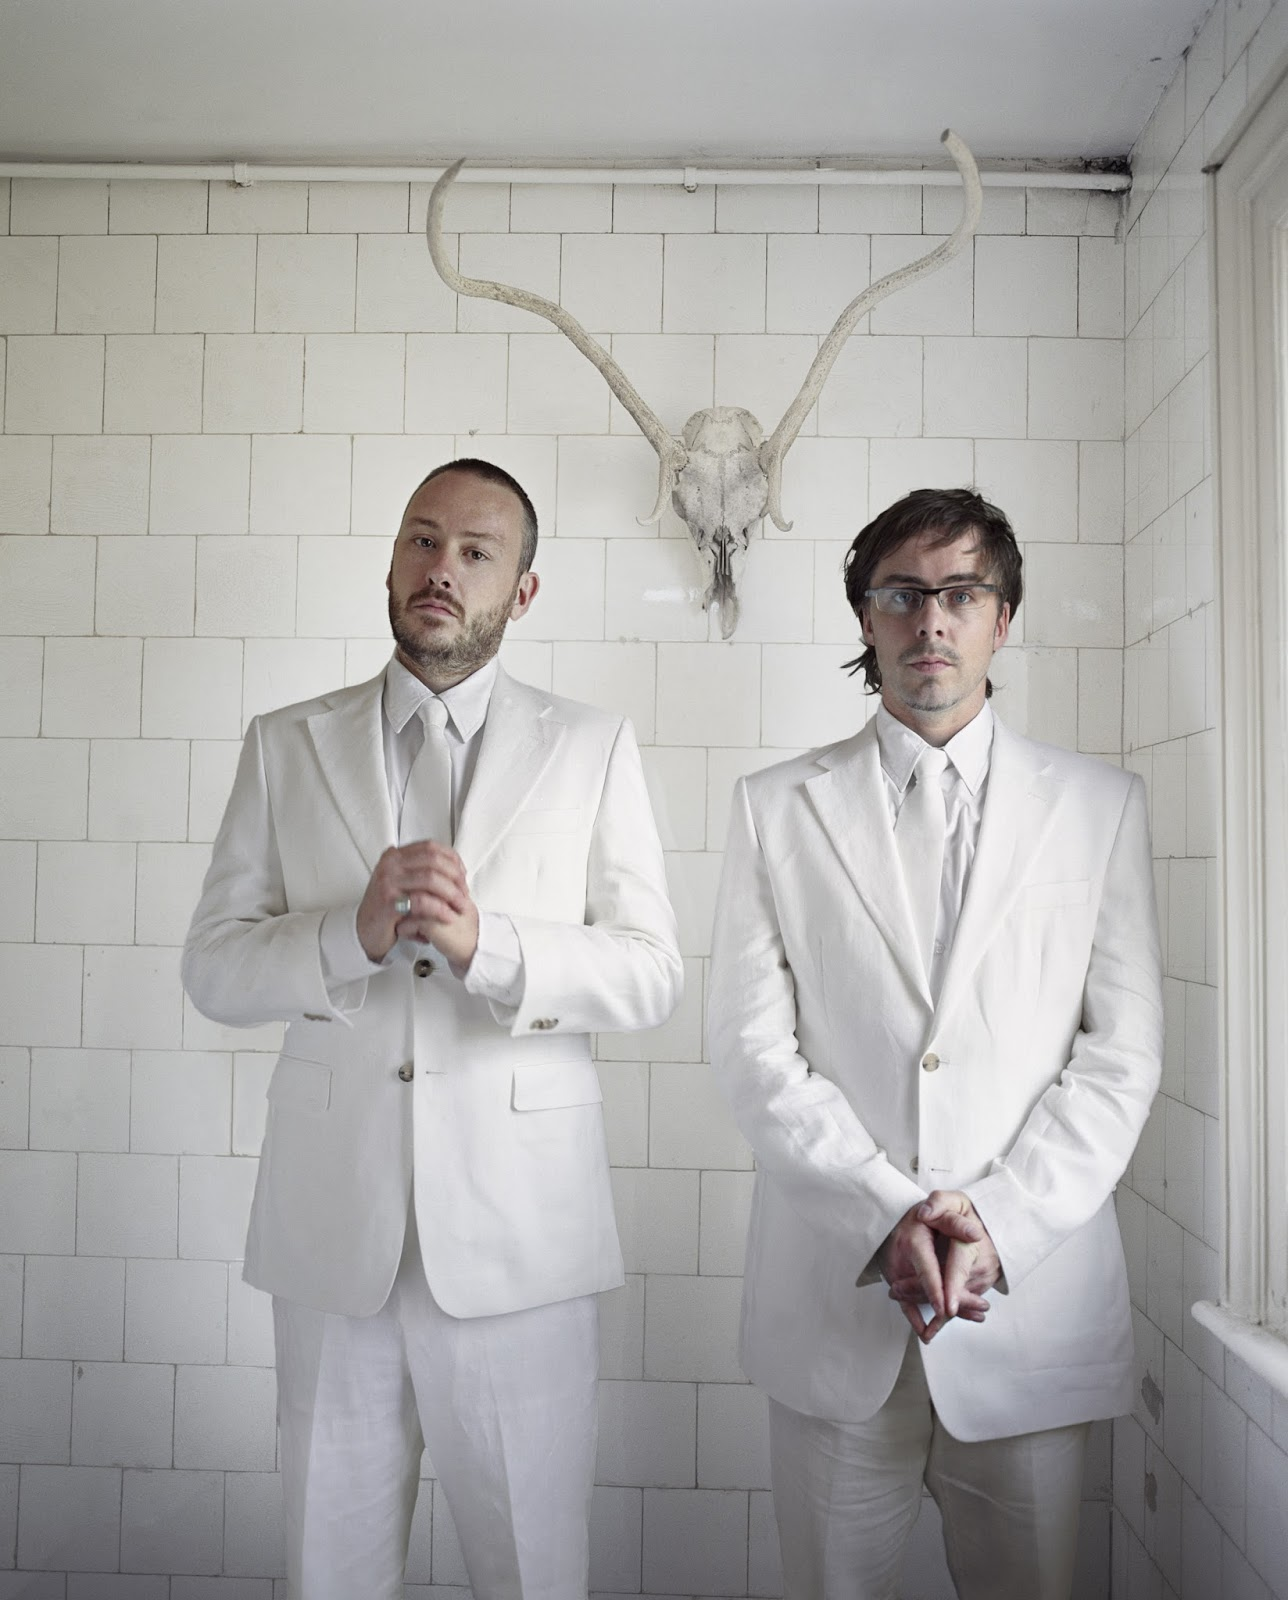 Music Monday - Basement Jaxx!